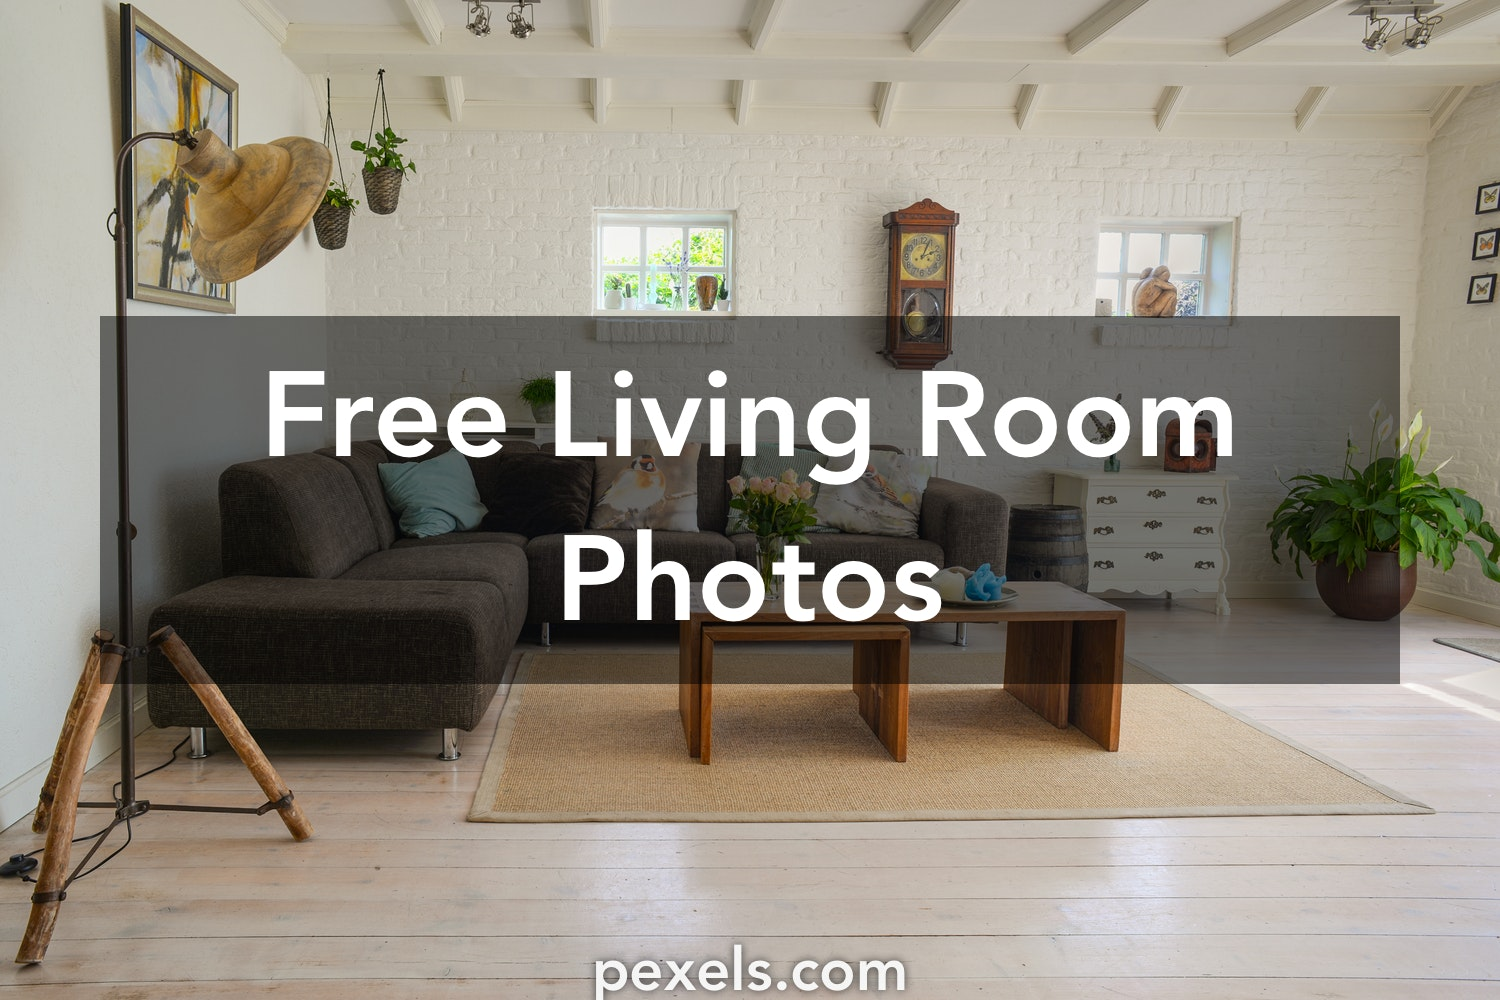 1000 beautiful living room photos pexels free stock photos - Free Interior Design Ideas For Living Rooms